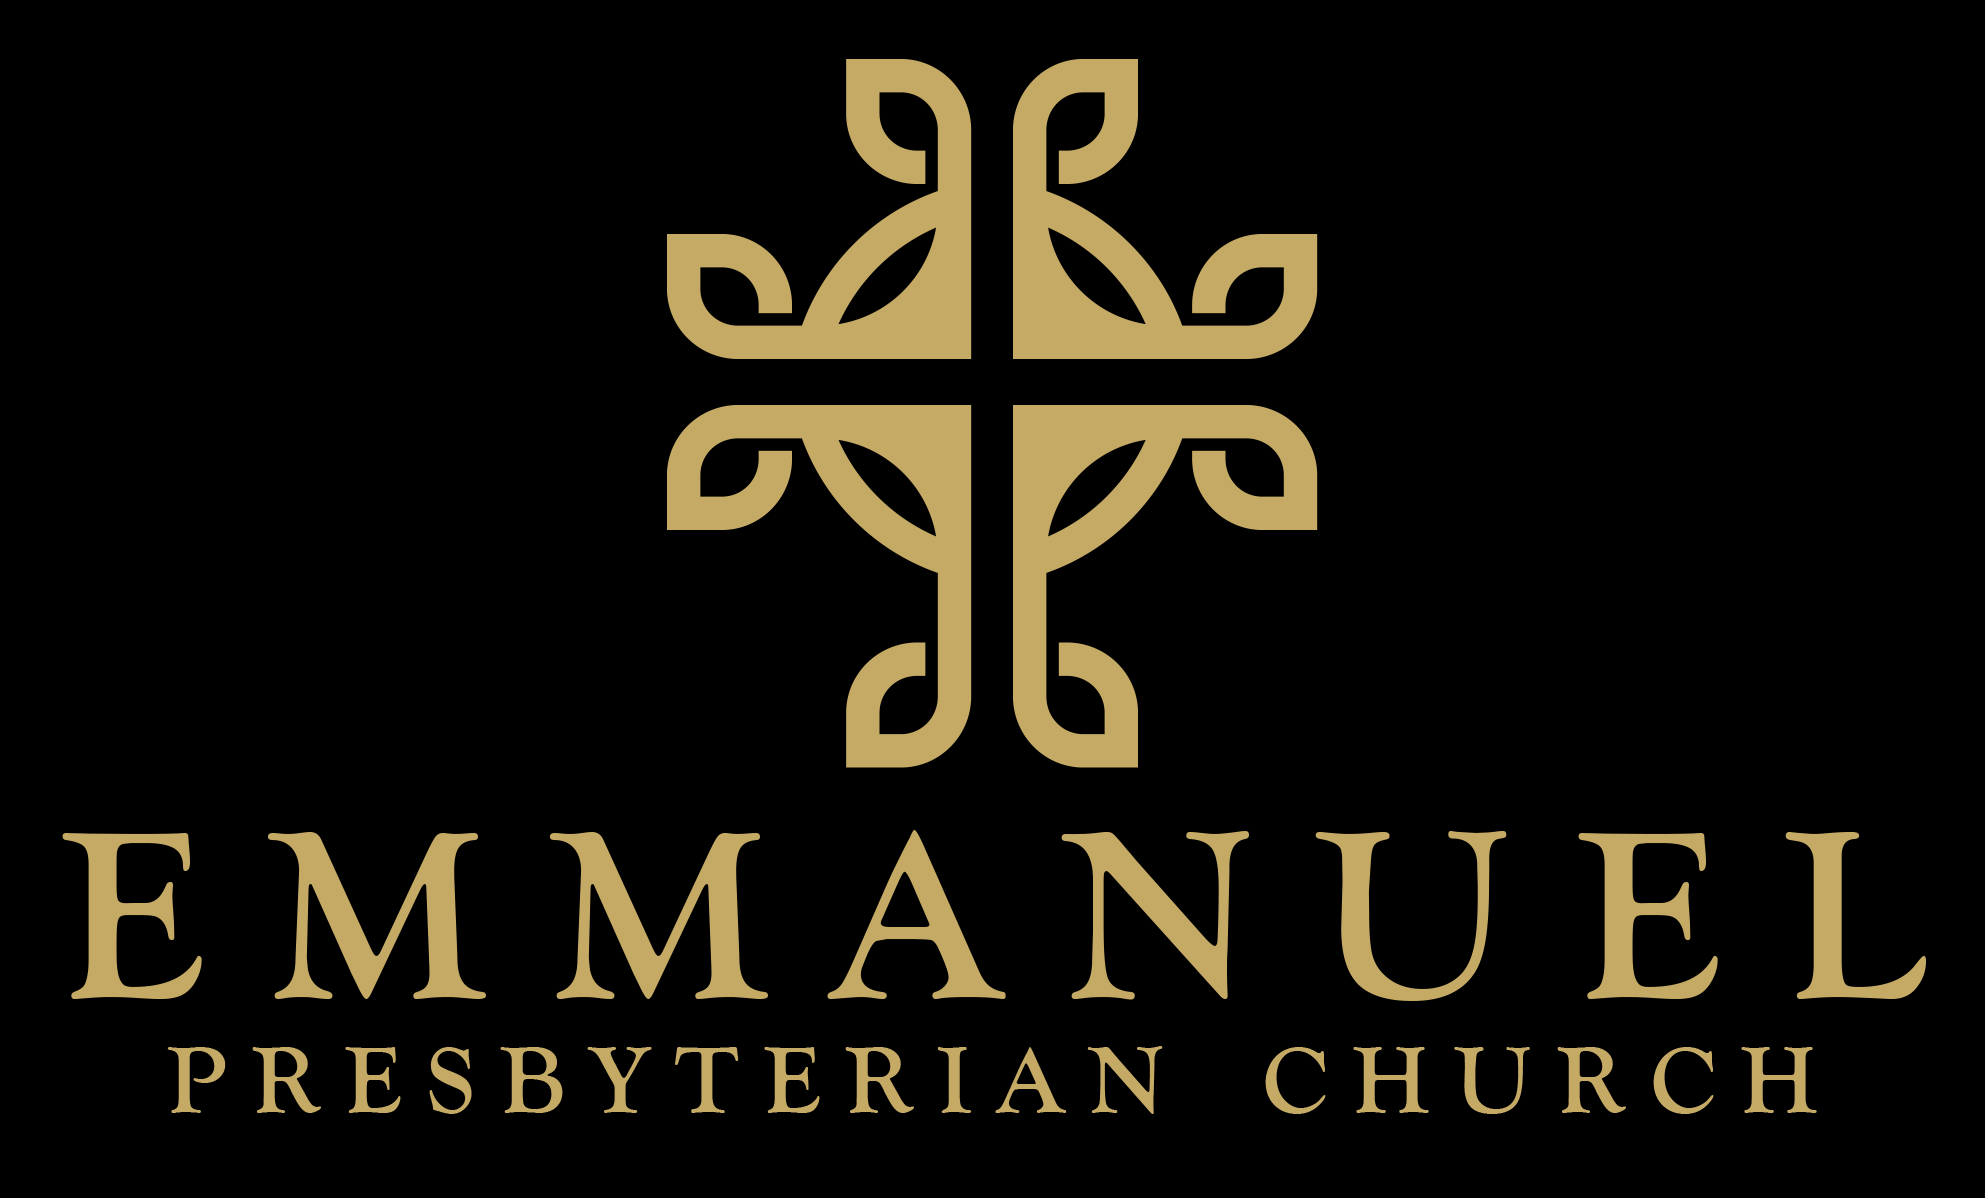 Create a historic logo for a new church community.